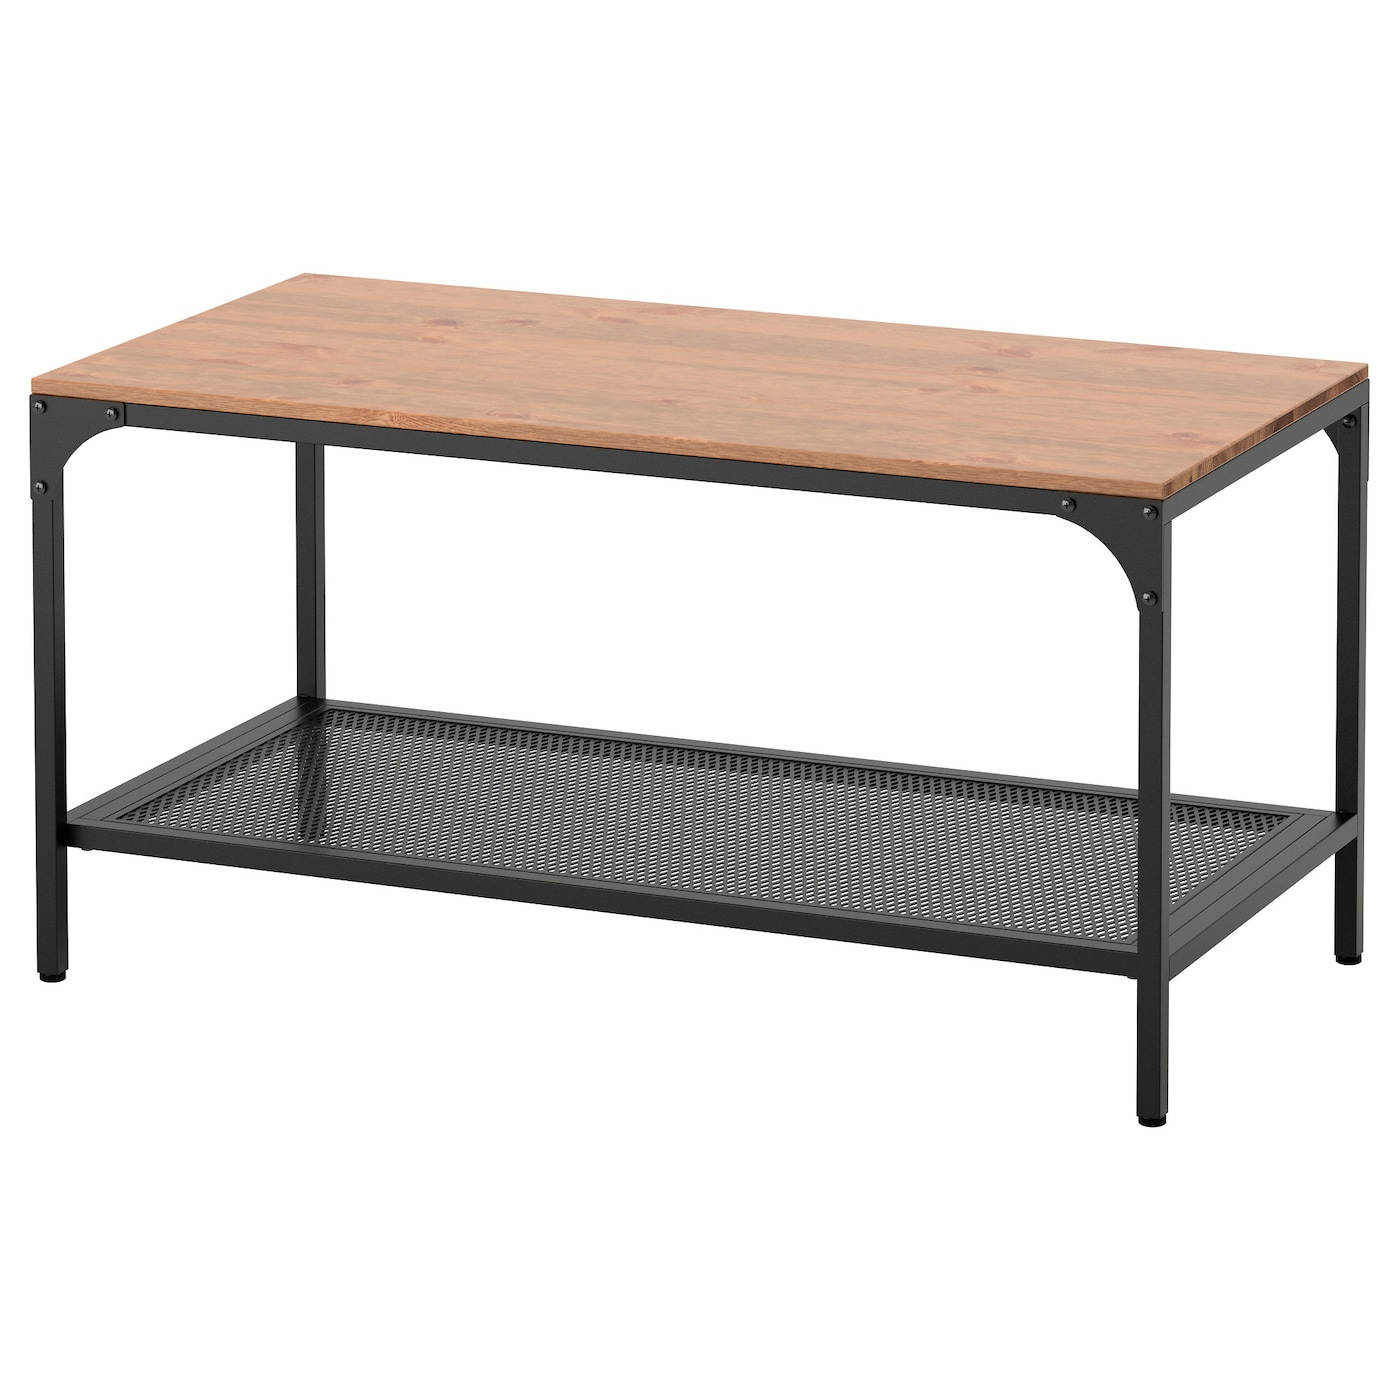 Fj llbo coffee table black 90x46 cm ikea for Table 4 personnes ikea